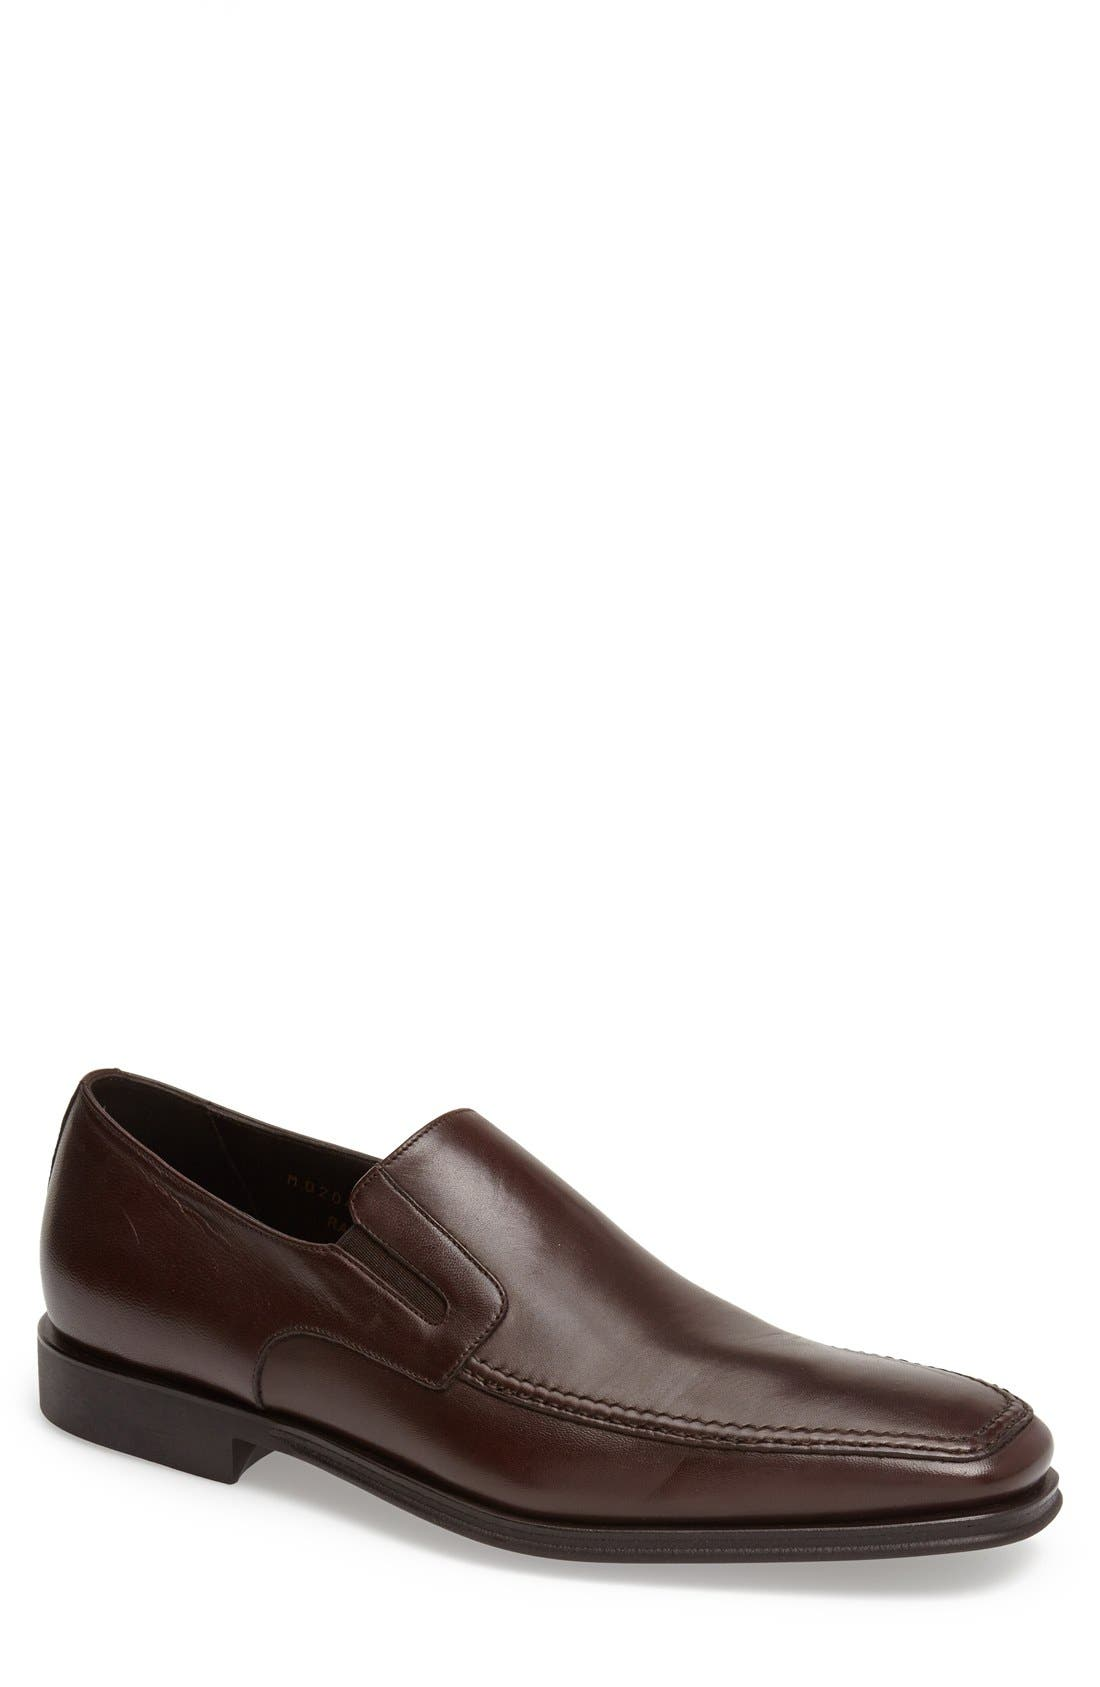 Alternate Image 1 Selected - Bruno Magli 'Raging' Loafer (Men)